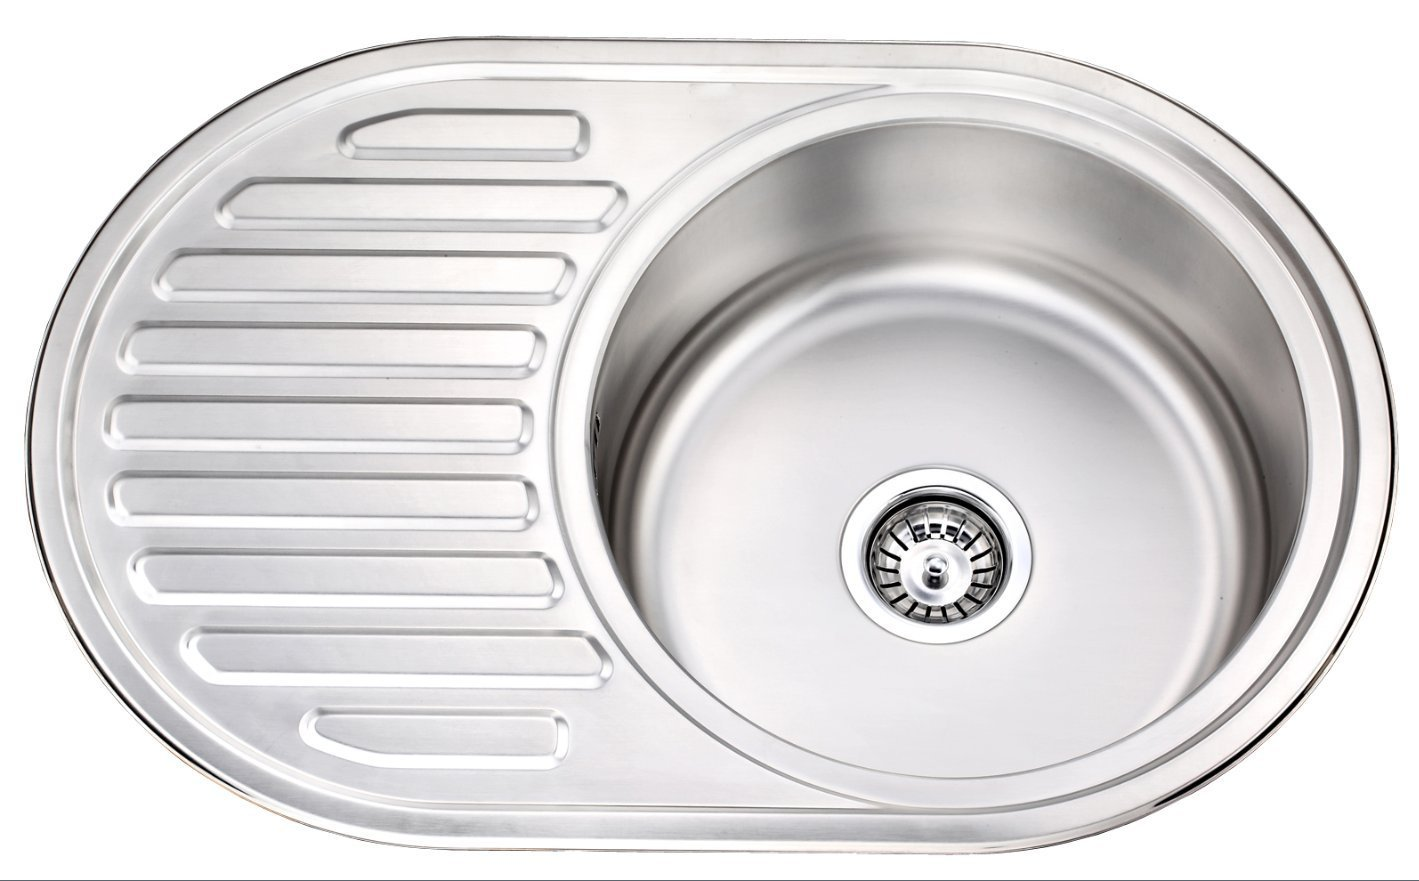 RV Caravan Camper Boat Camping Trailer Stainless Steel Kitchen Sink Round Shape with Drain Board GR-520